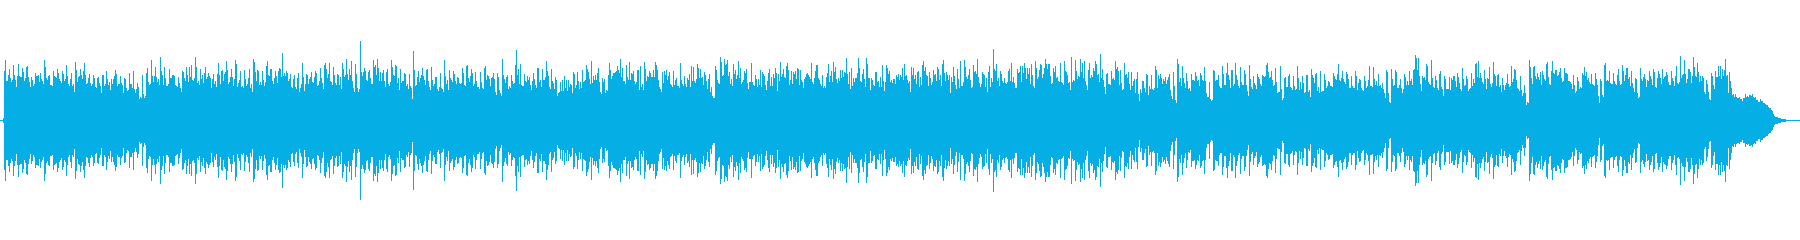 Spectacular sprinting trumpet moving pop rock's reproduced waveform